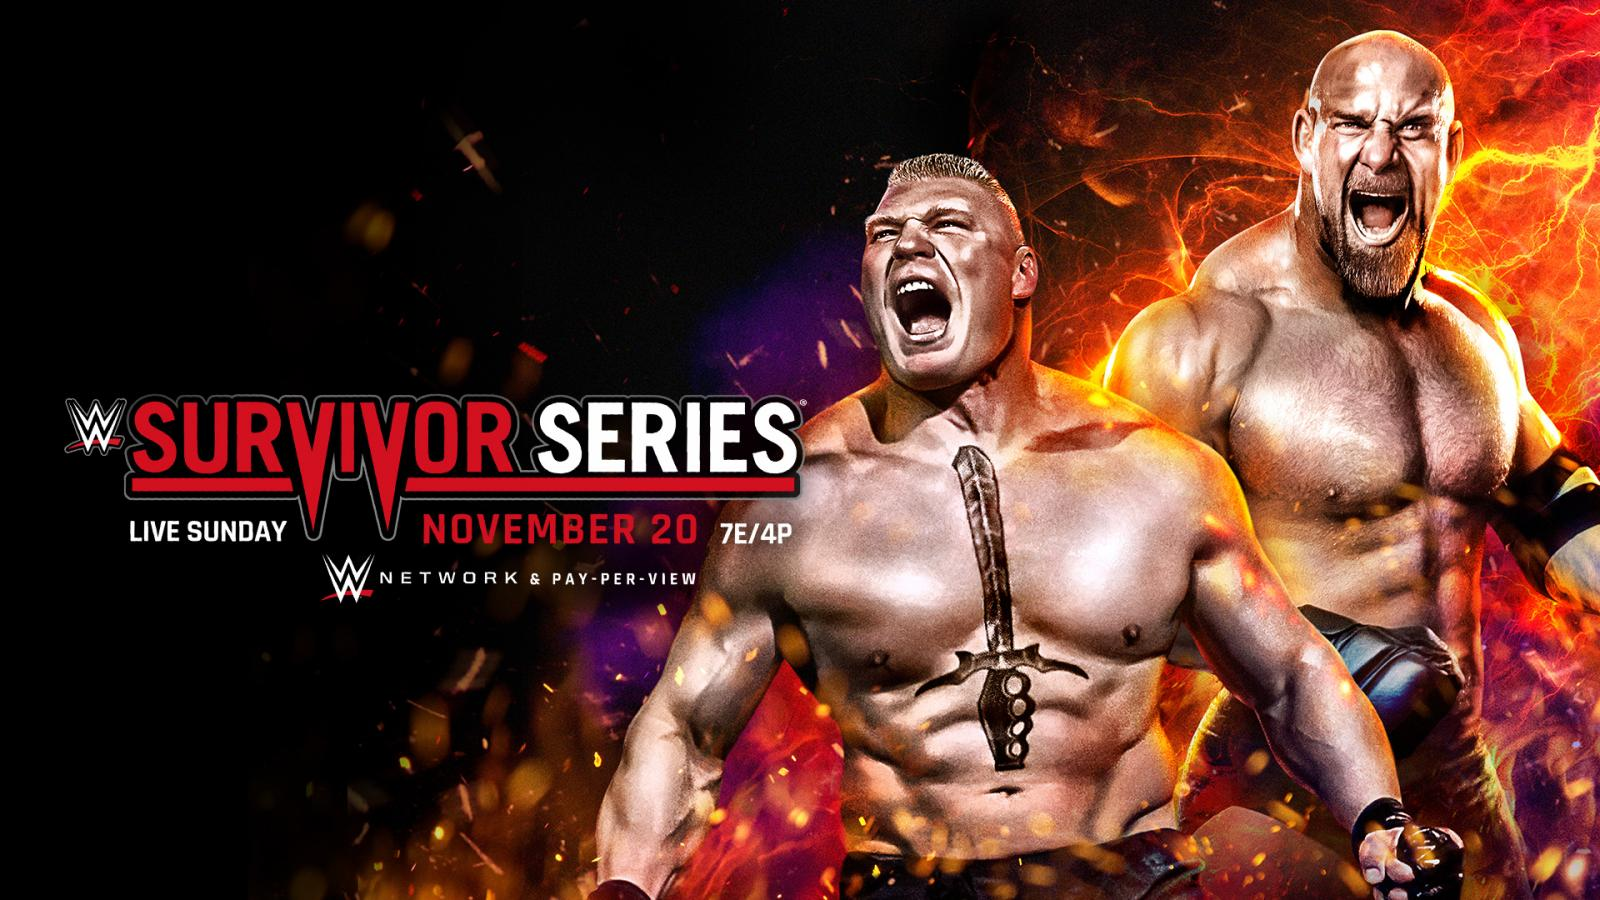 Survivorseries2016wp